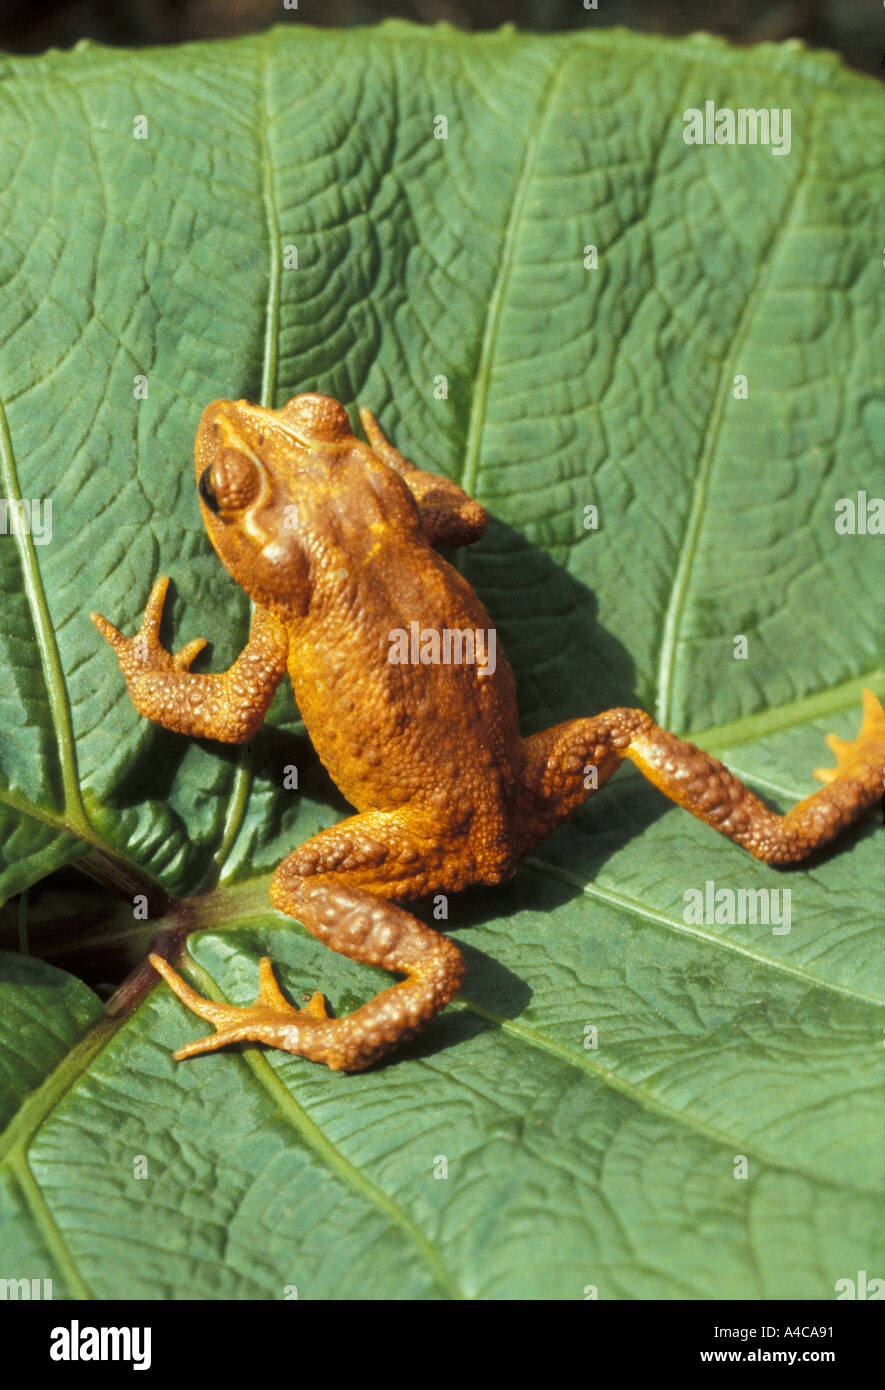 golden toad stock photo 314001 alamy